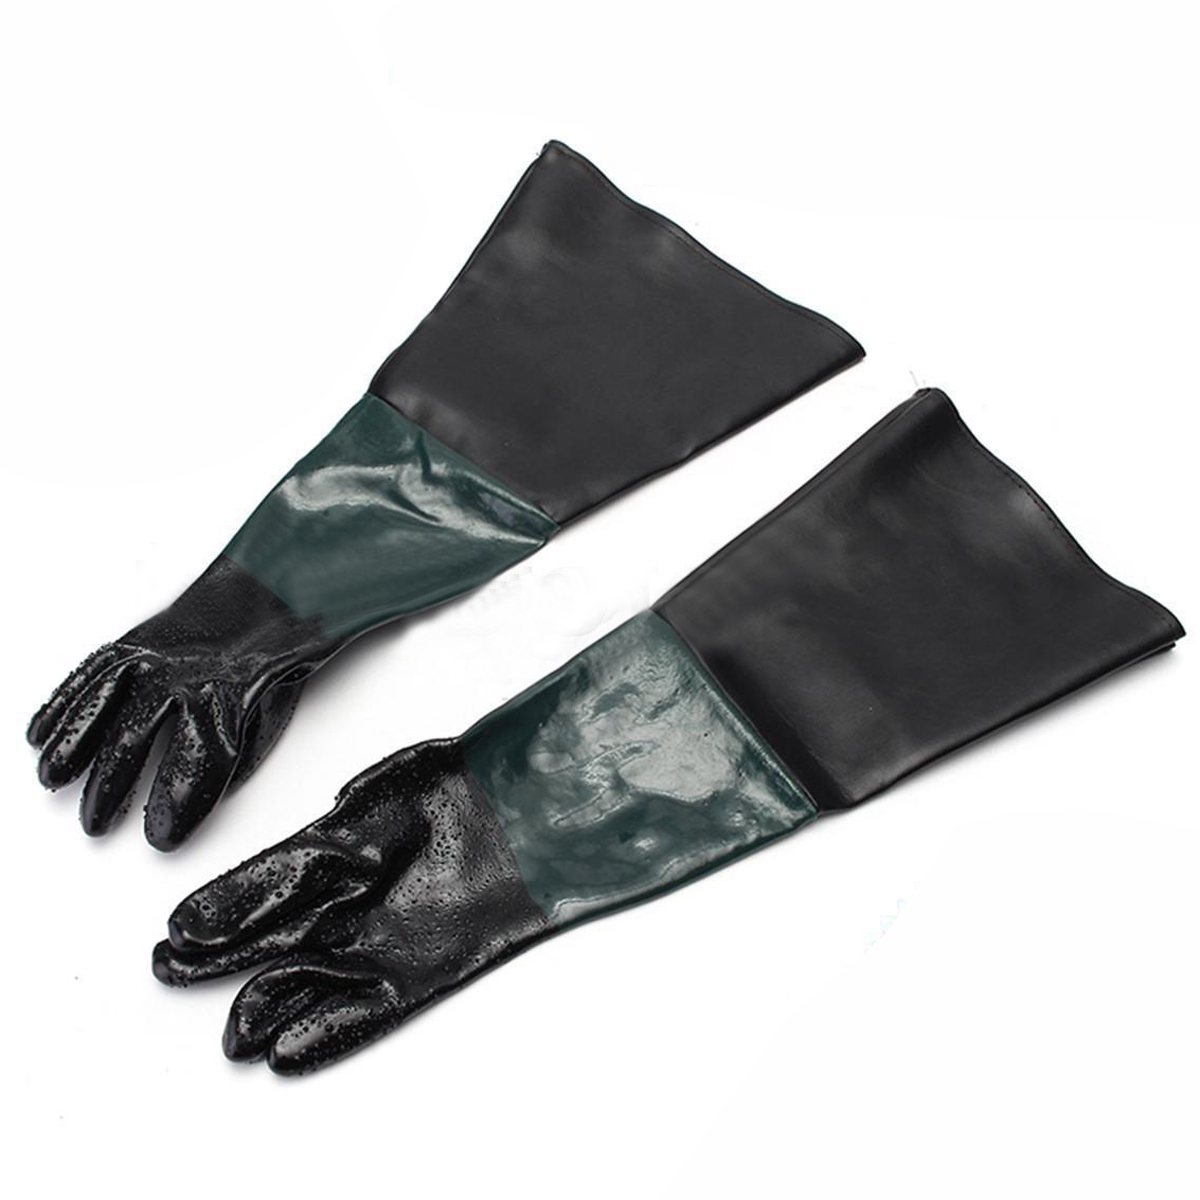 1 Pair Of Heavy Duty Gloves Soft PVC Vinyl Sandblasting Gloves 60cm For Sandblaster Sand Blast Cabinet Sandblasting Machine pvc sandblaster gloves 60cm